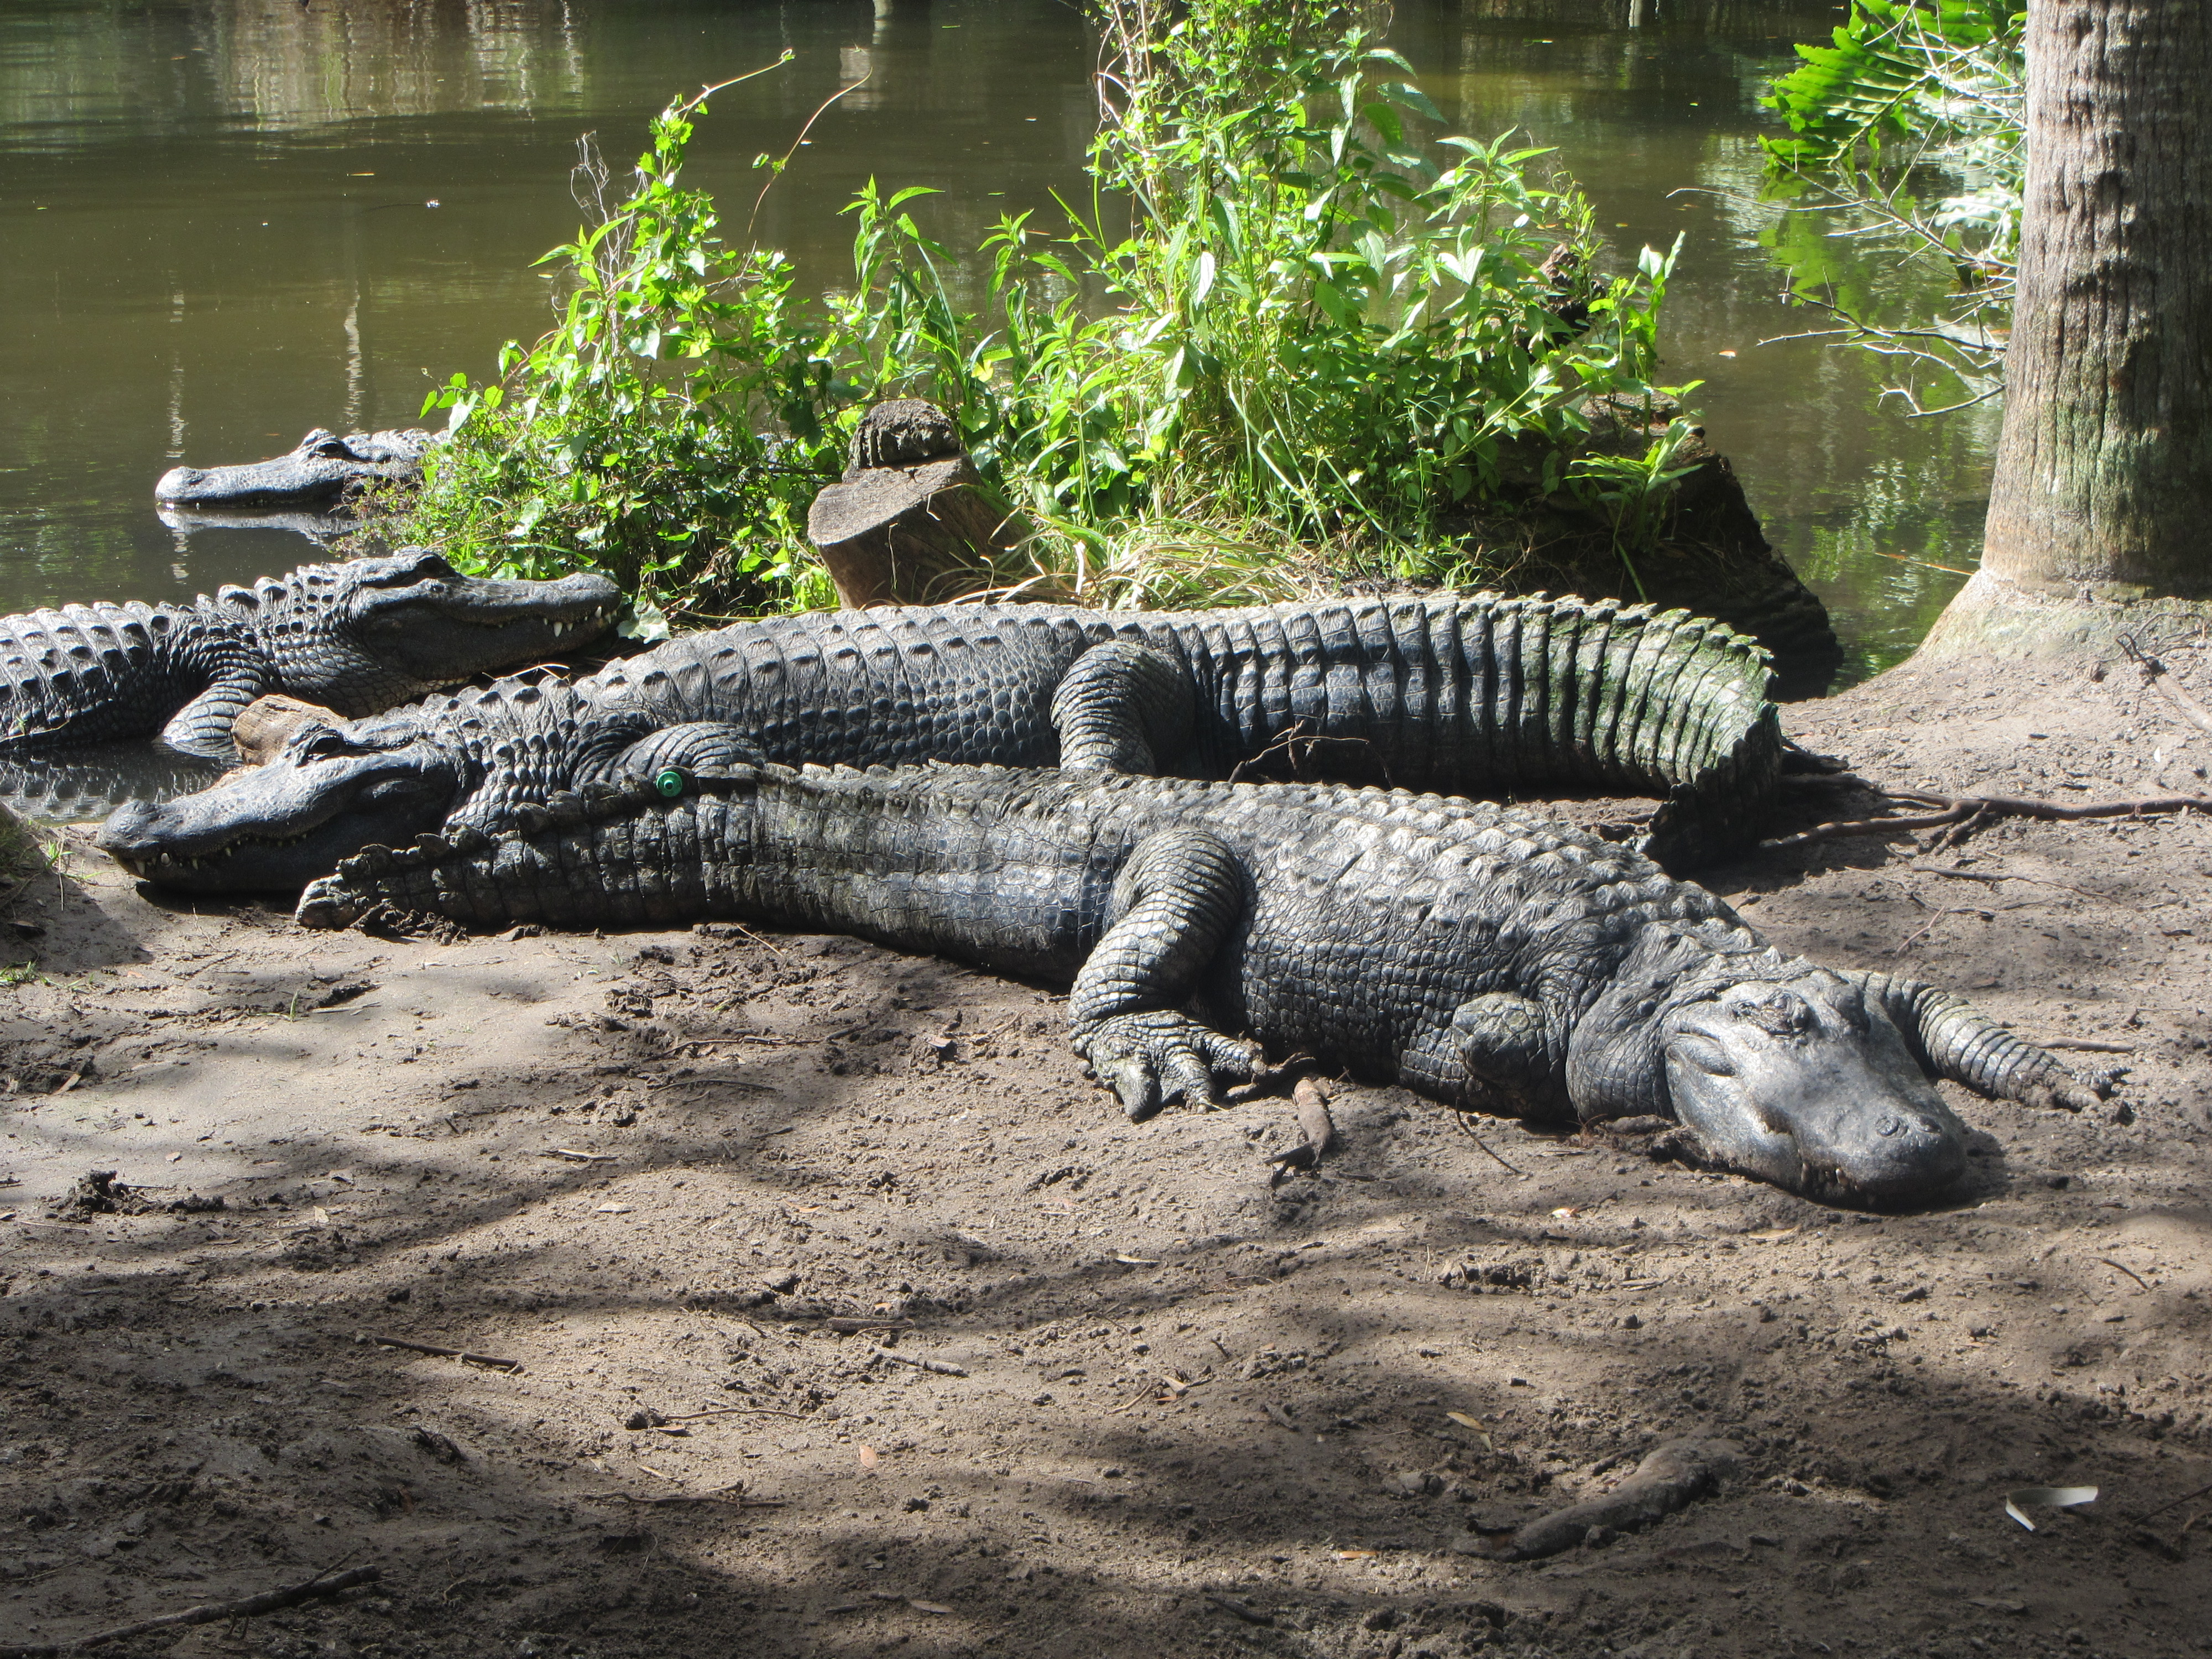 A group of three large alligators lazing on the muddy bank of a river.